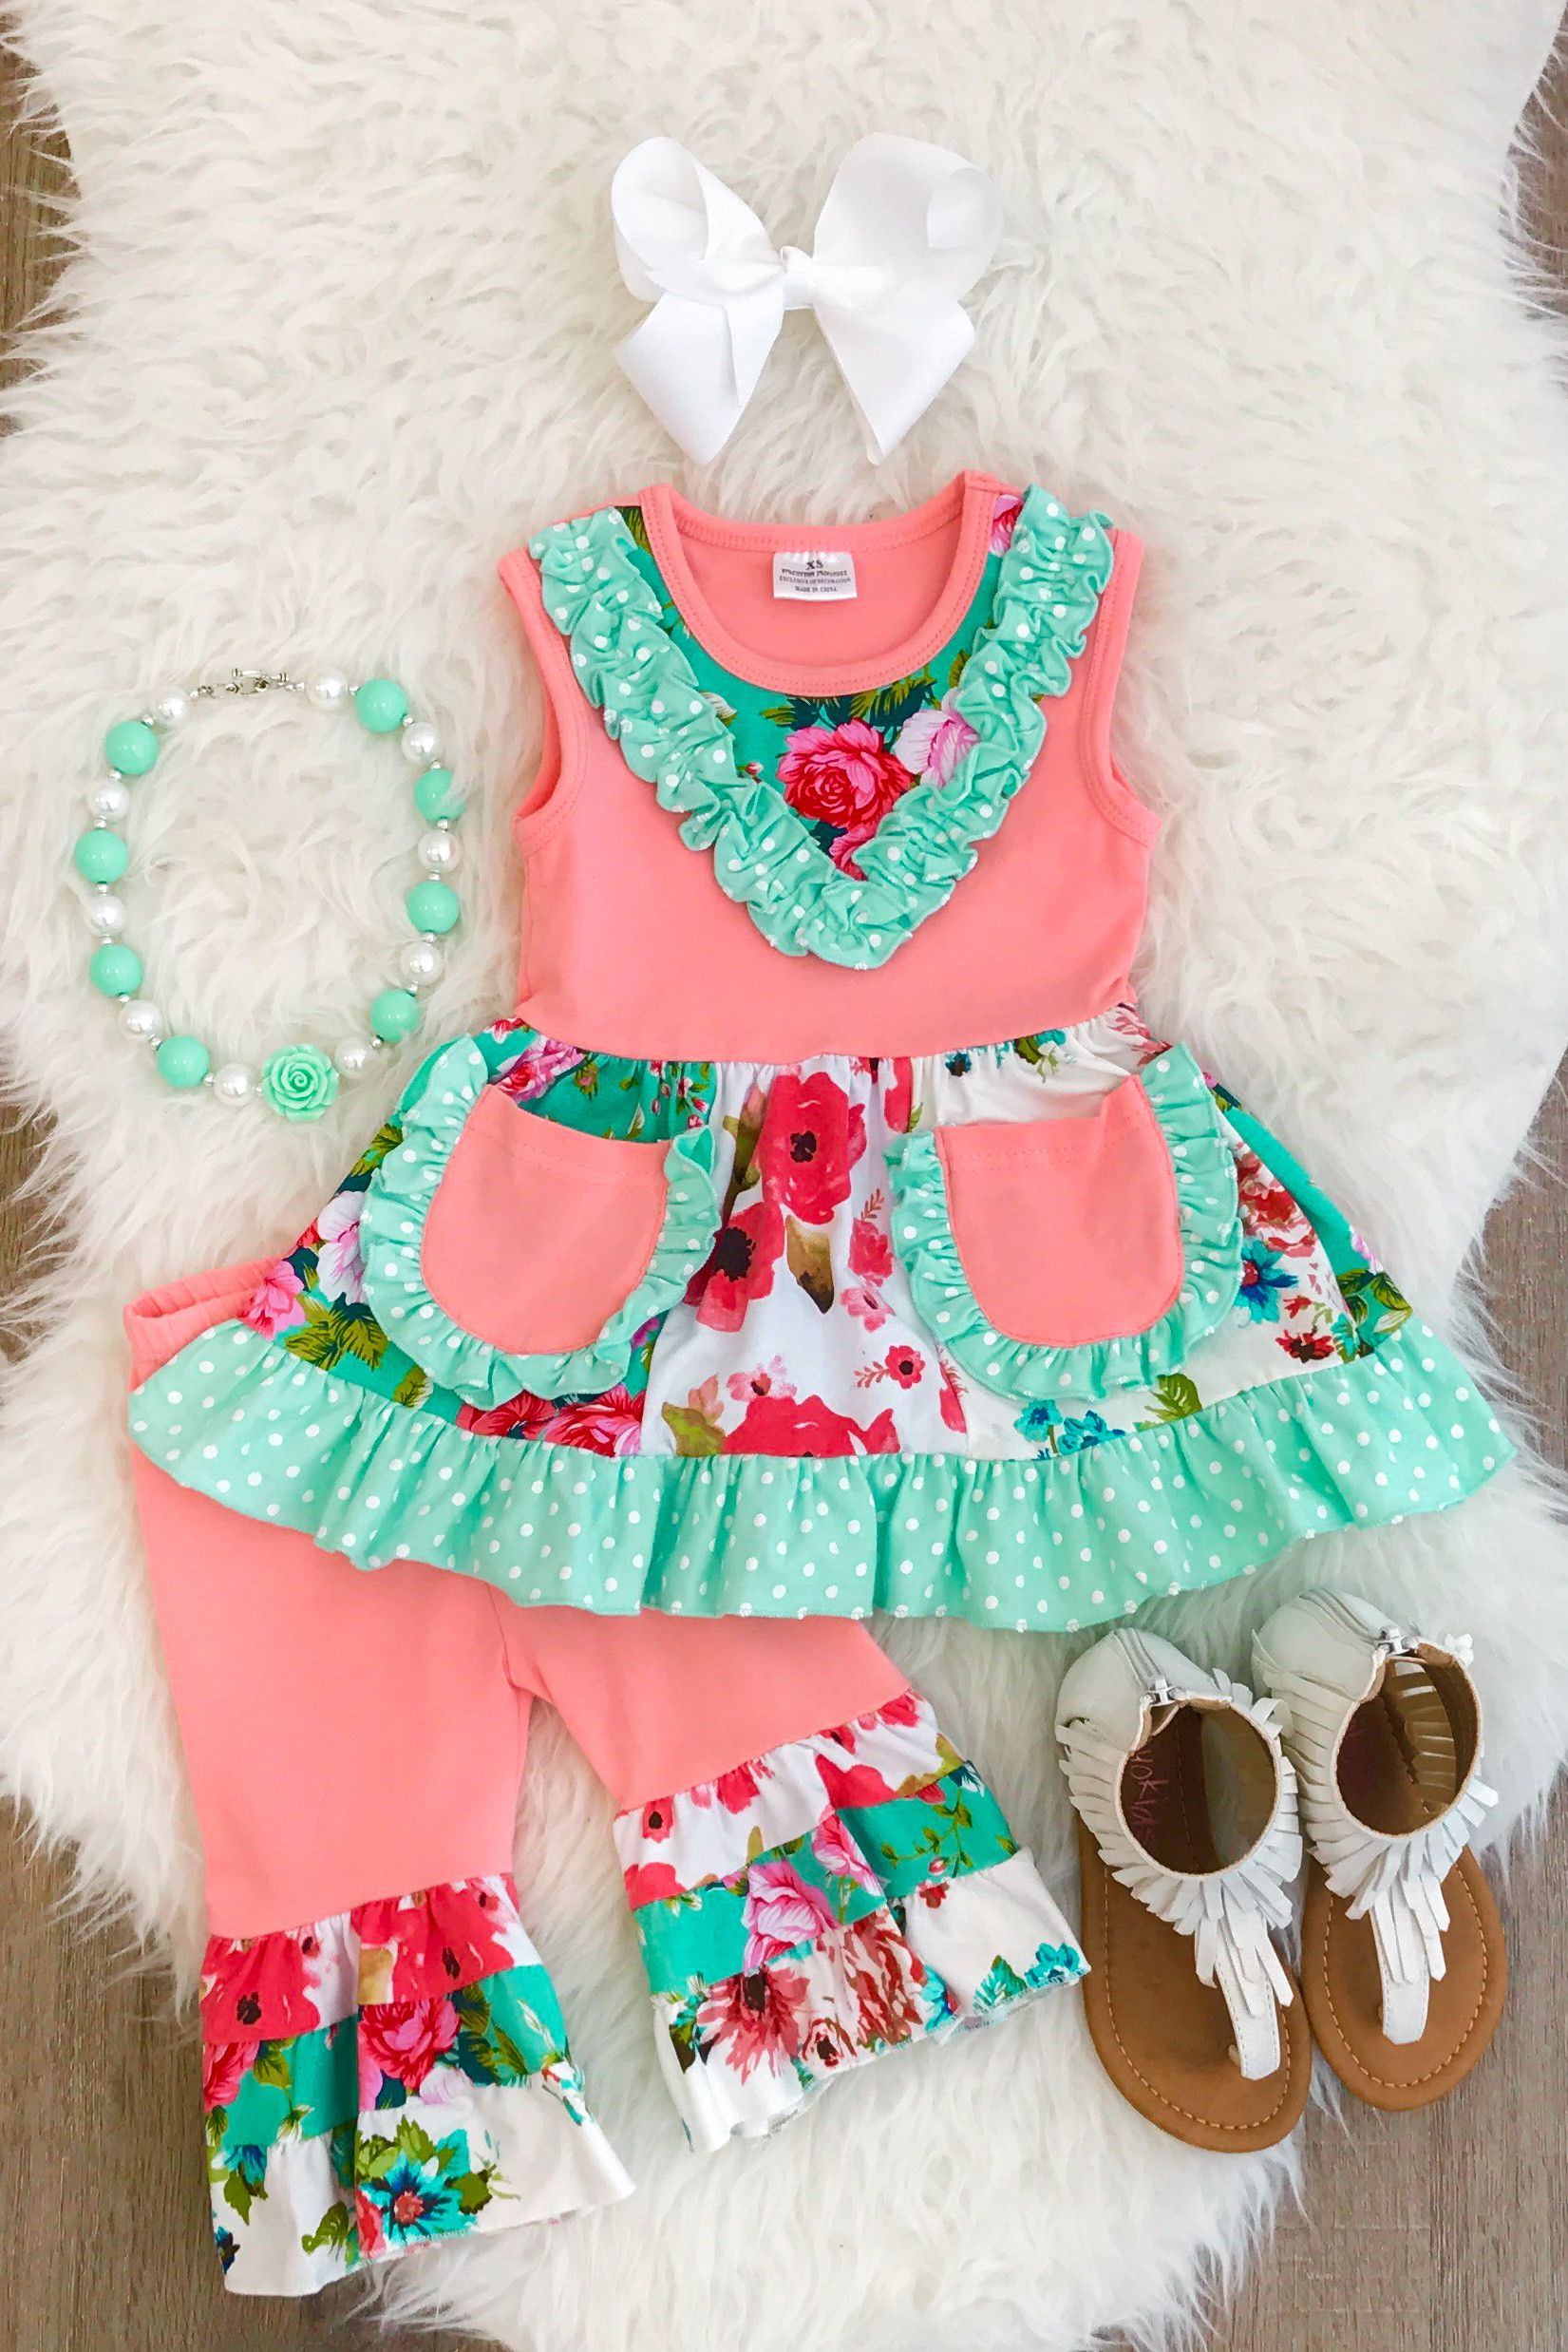 Pin on Boutique Outfits